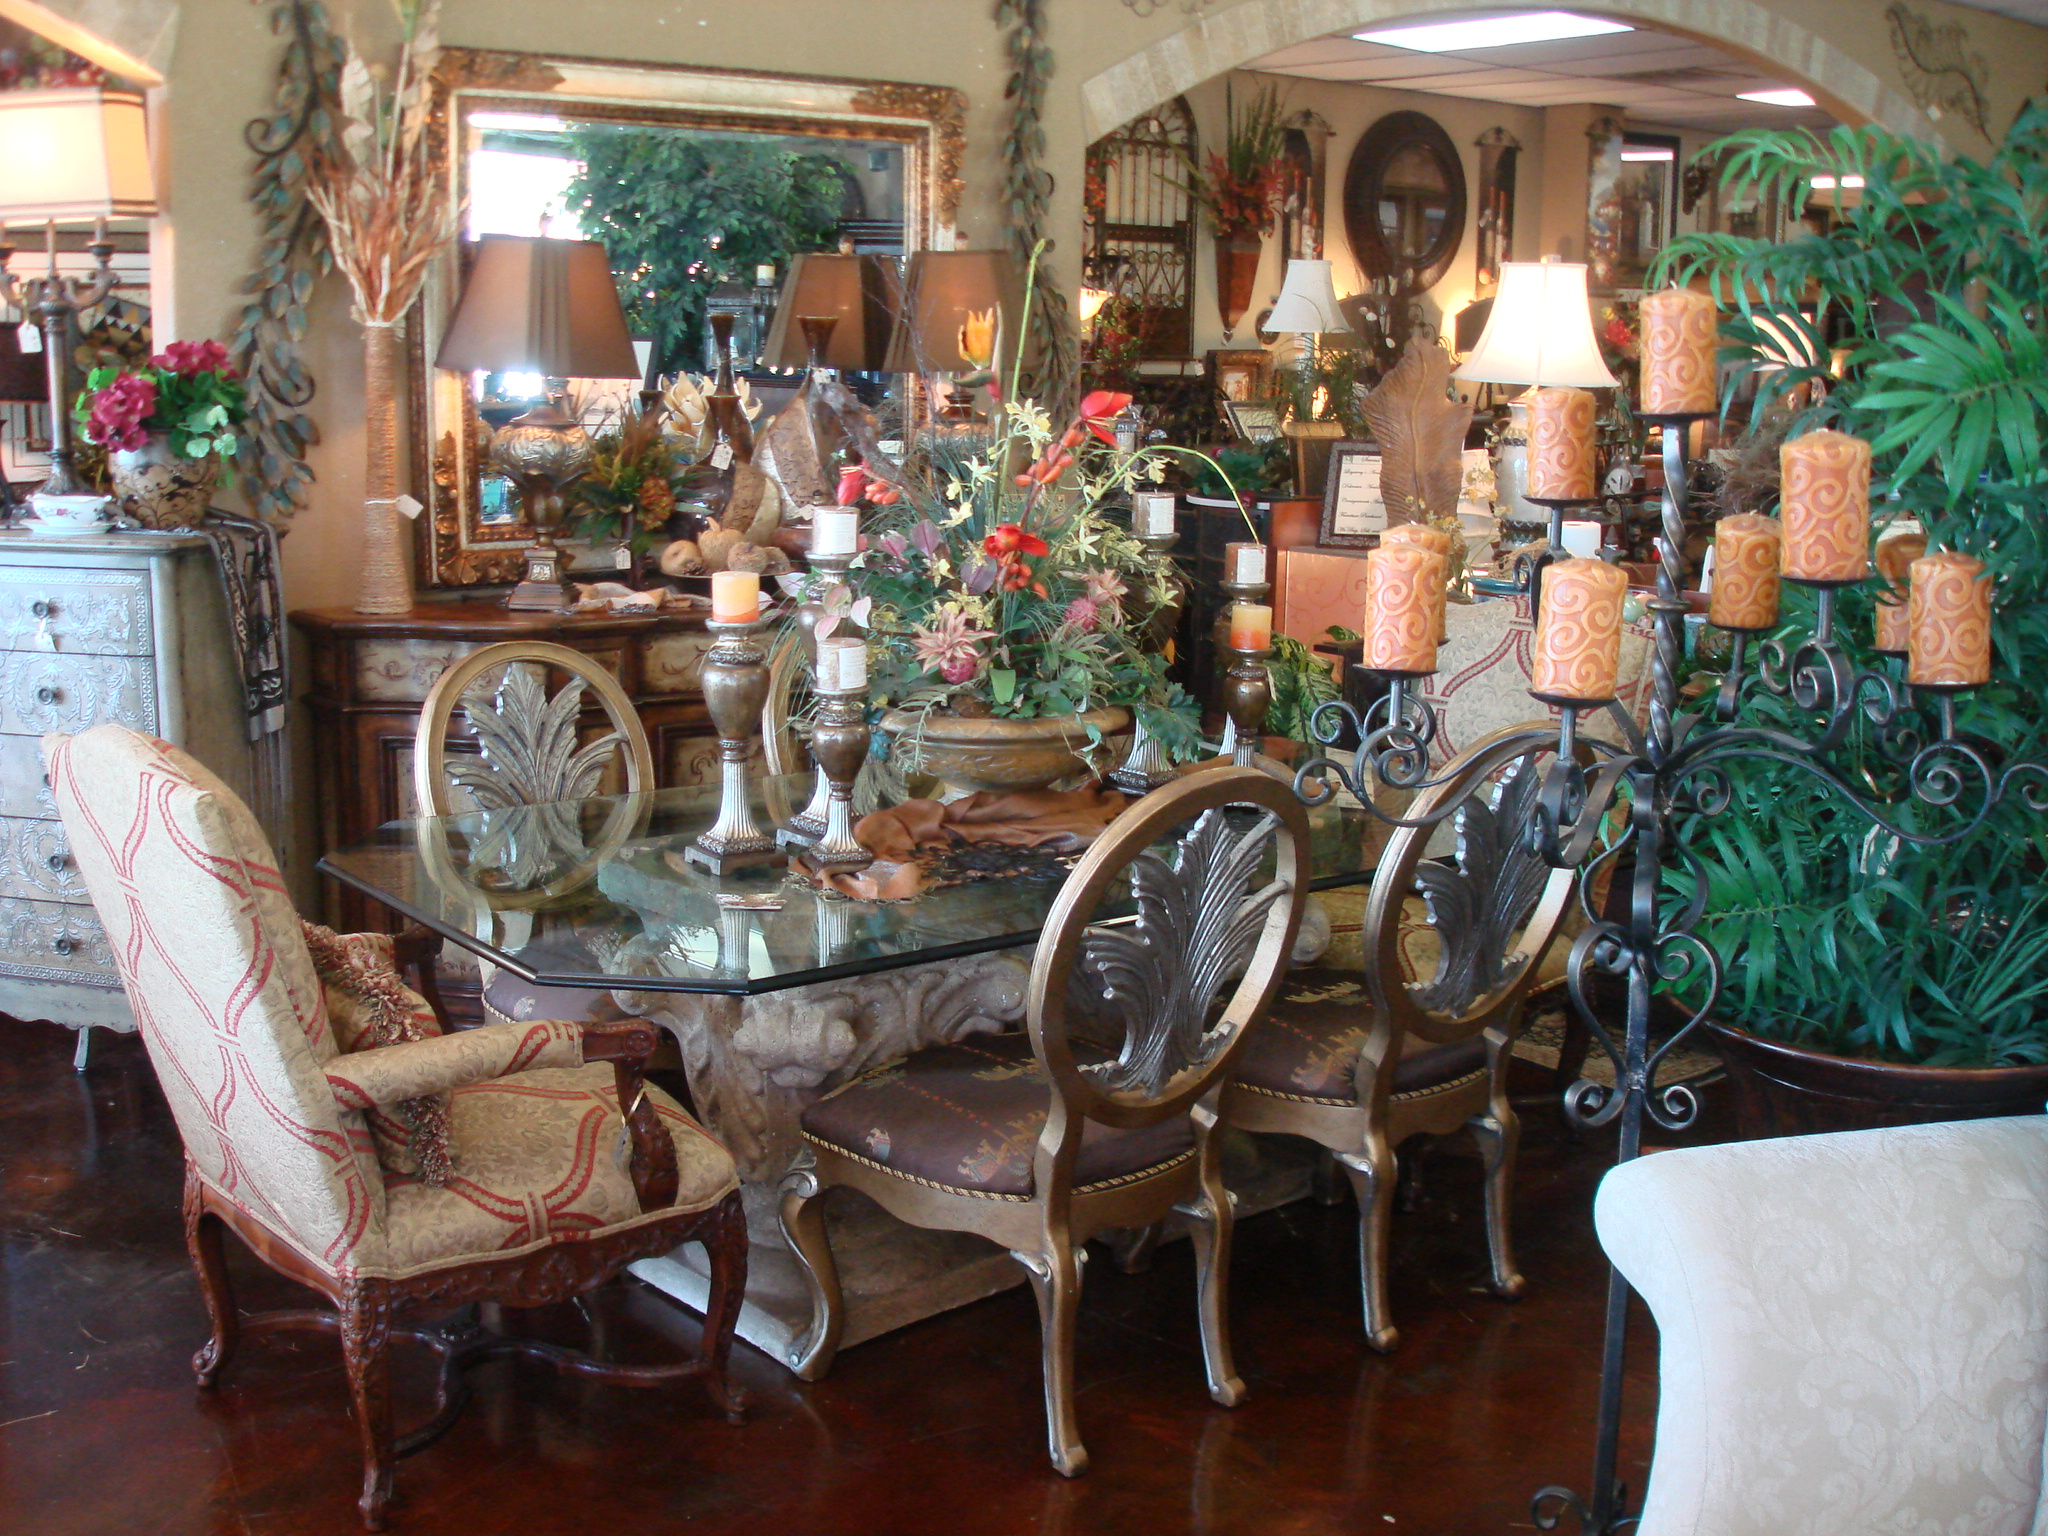 Second Home Furniture Resale 2267 NW Military Hwy Ste 118, San Antonio, TX  78213   YP.com